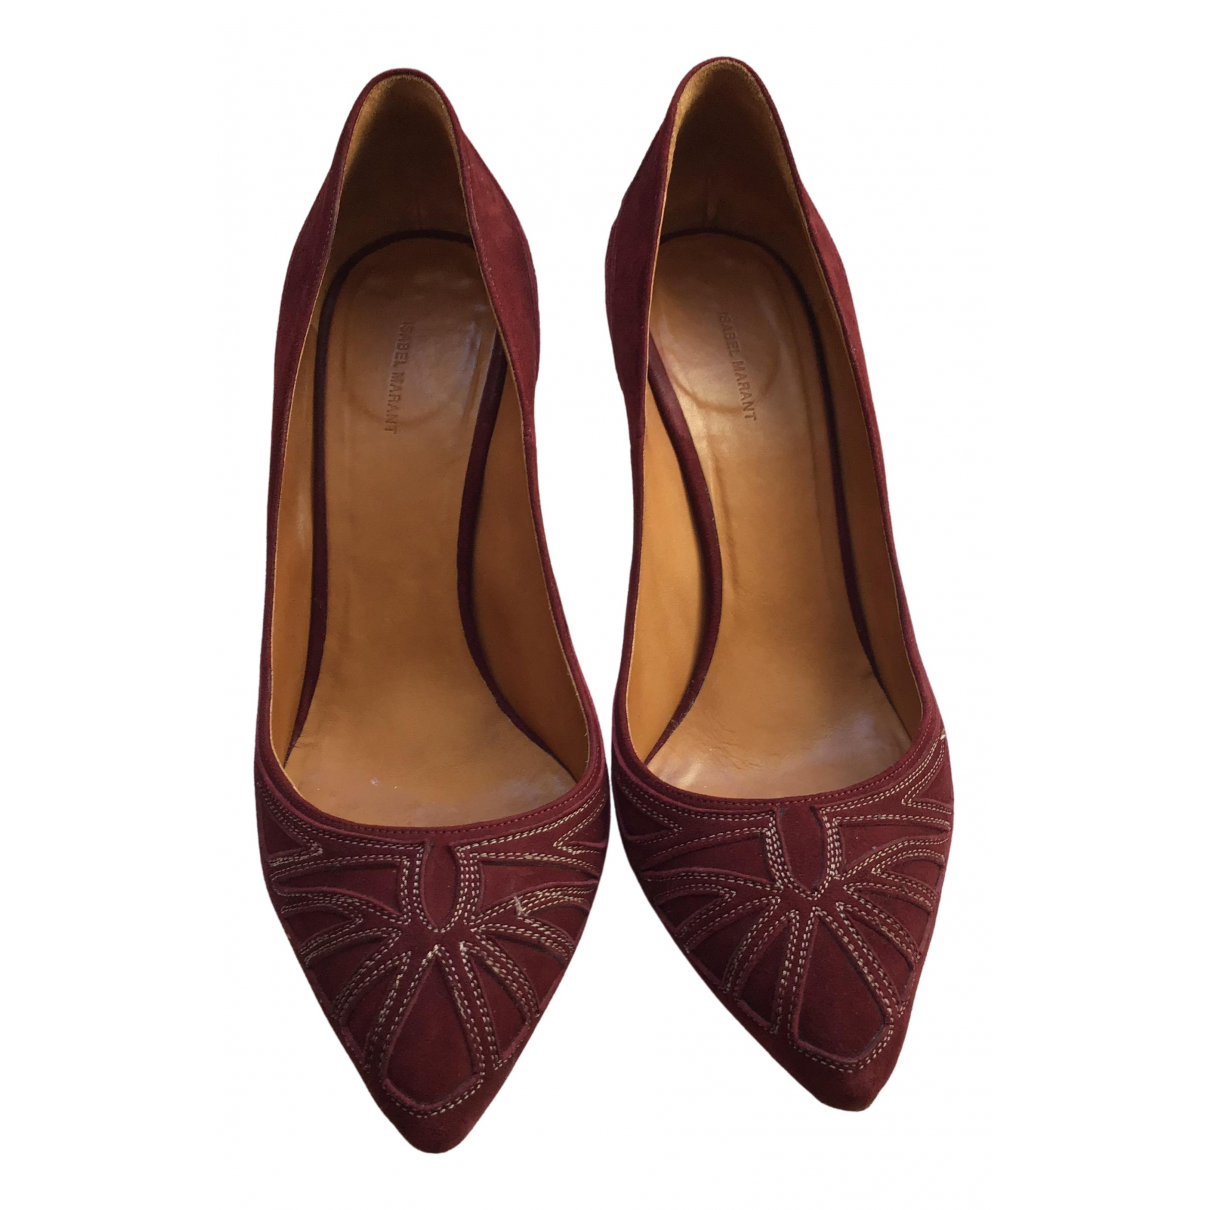 Isabel Marant N Burgundy Leather Heels for Women 39 EU